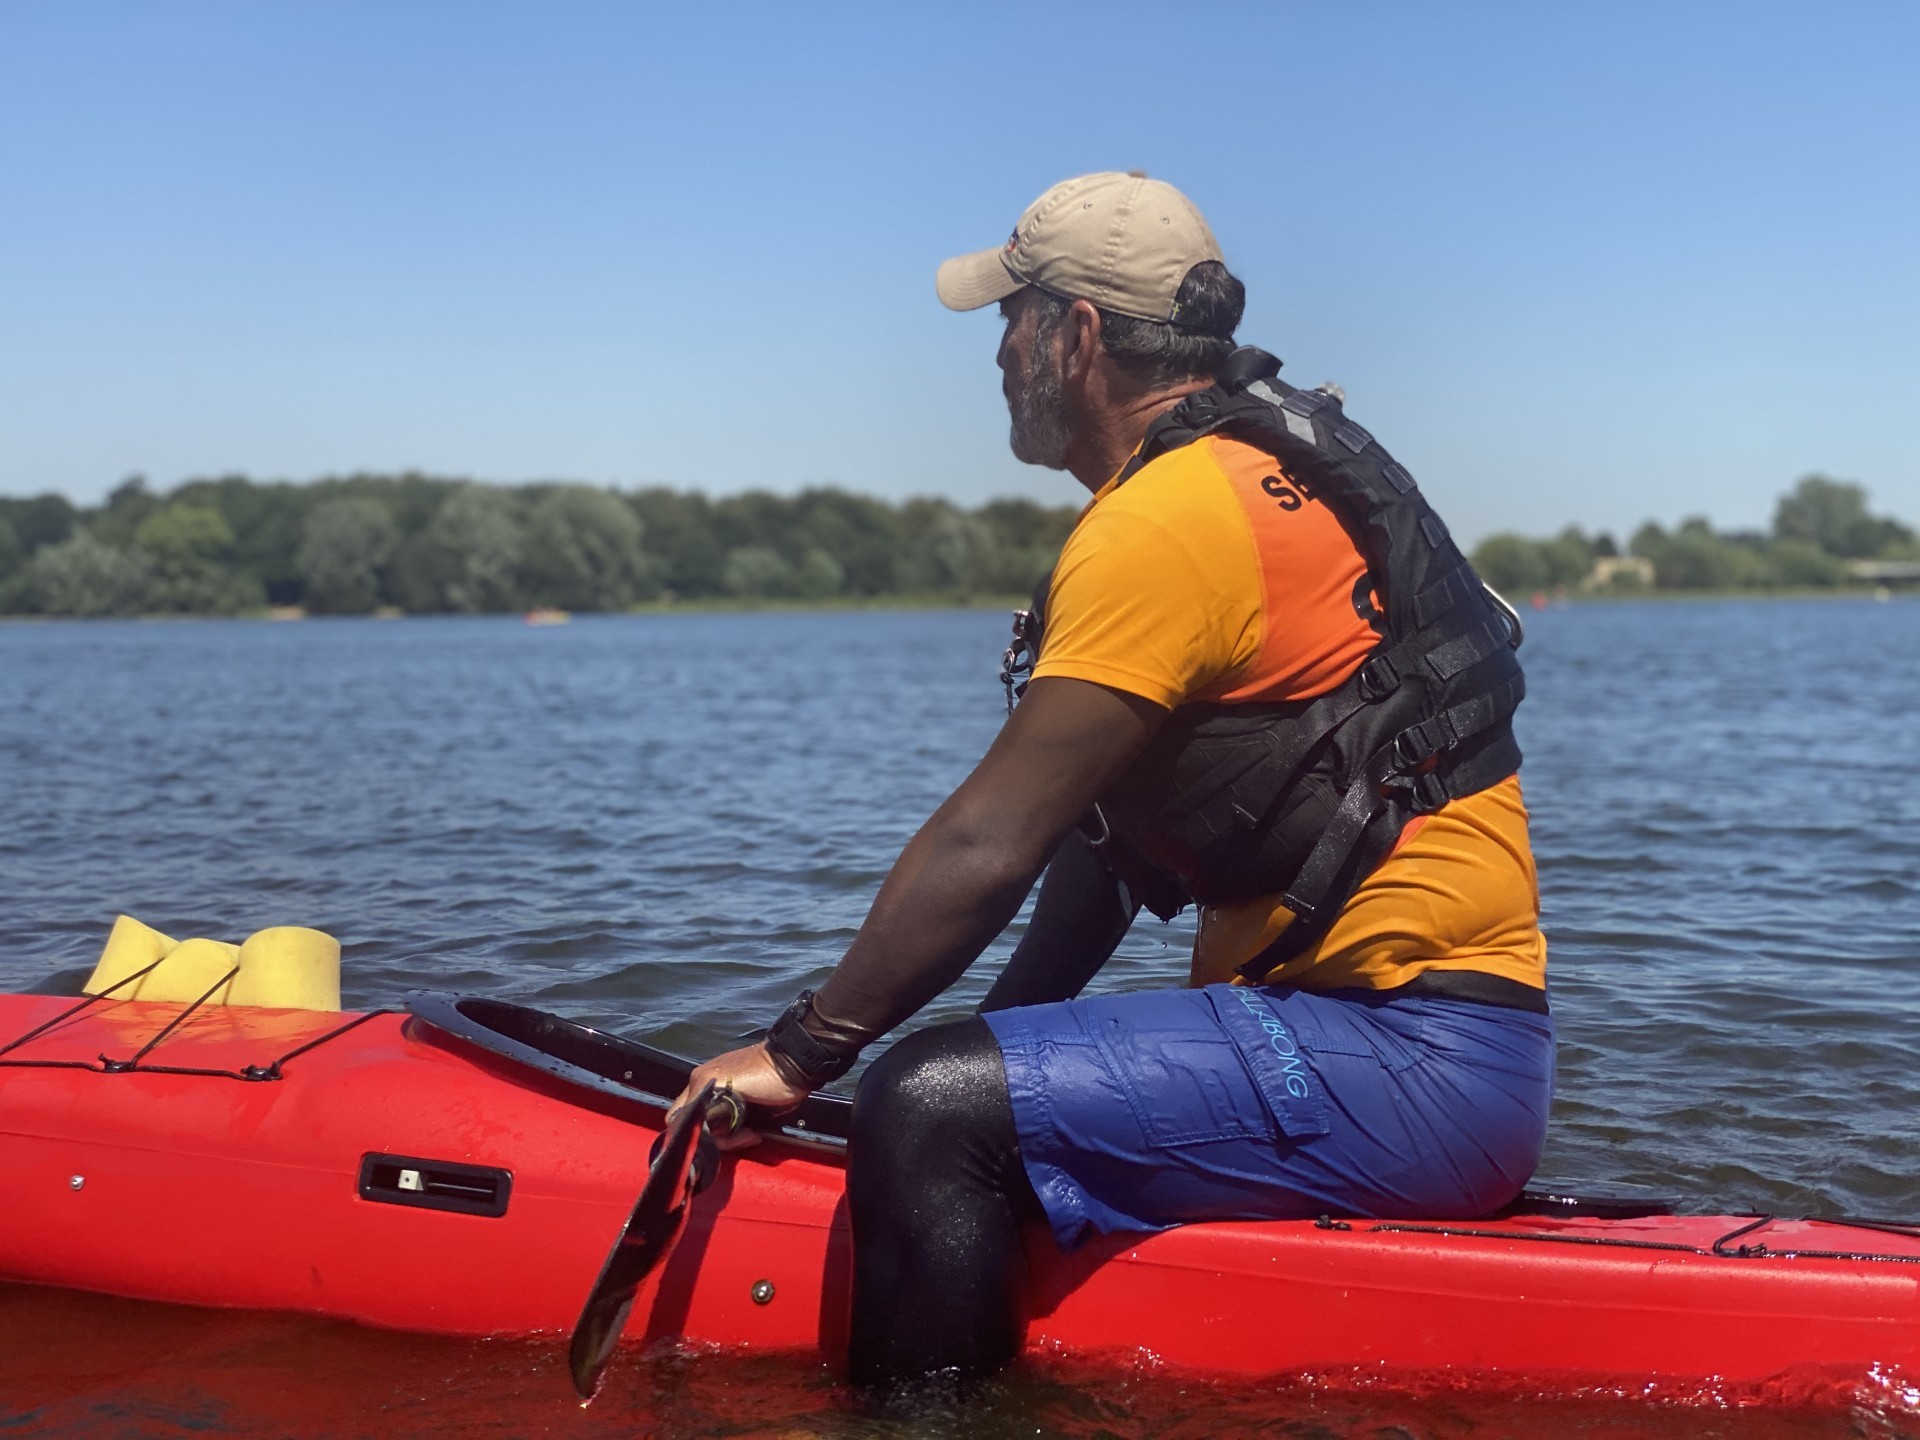 Stable NDK Sport RM sea kayak with a paddler sitting on the back deck